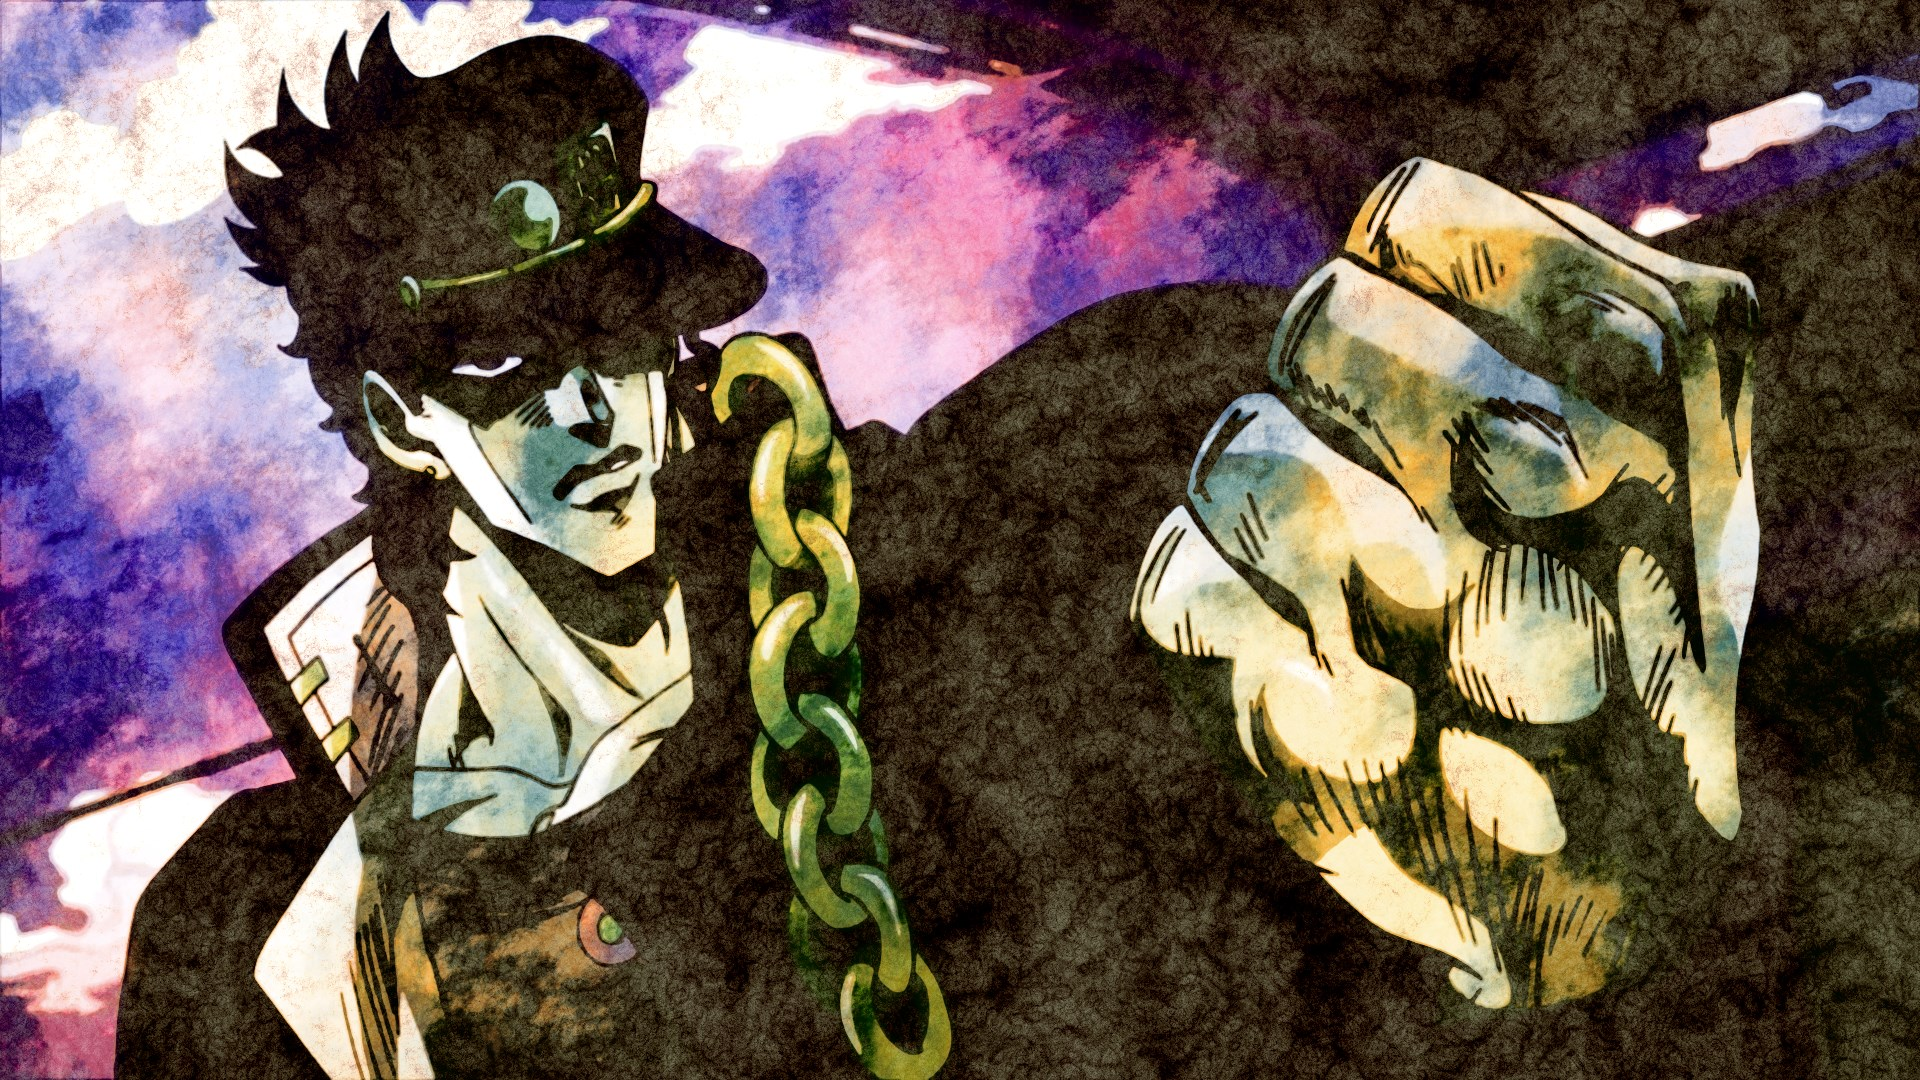 Best-jojos-bizarre-adventure-backround-by-Pittman-Cook-wallpaper-wp3803122